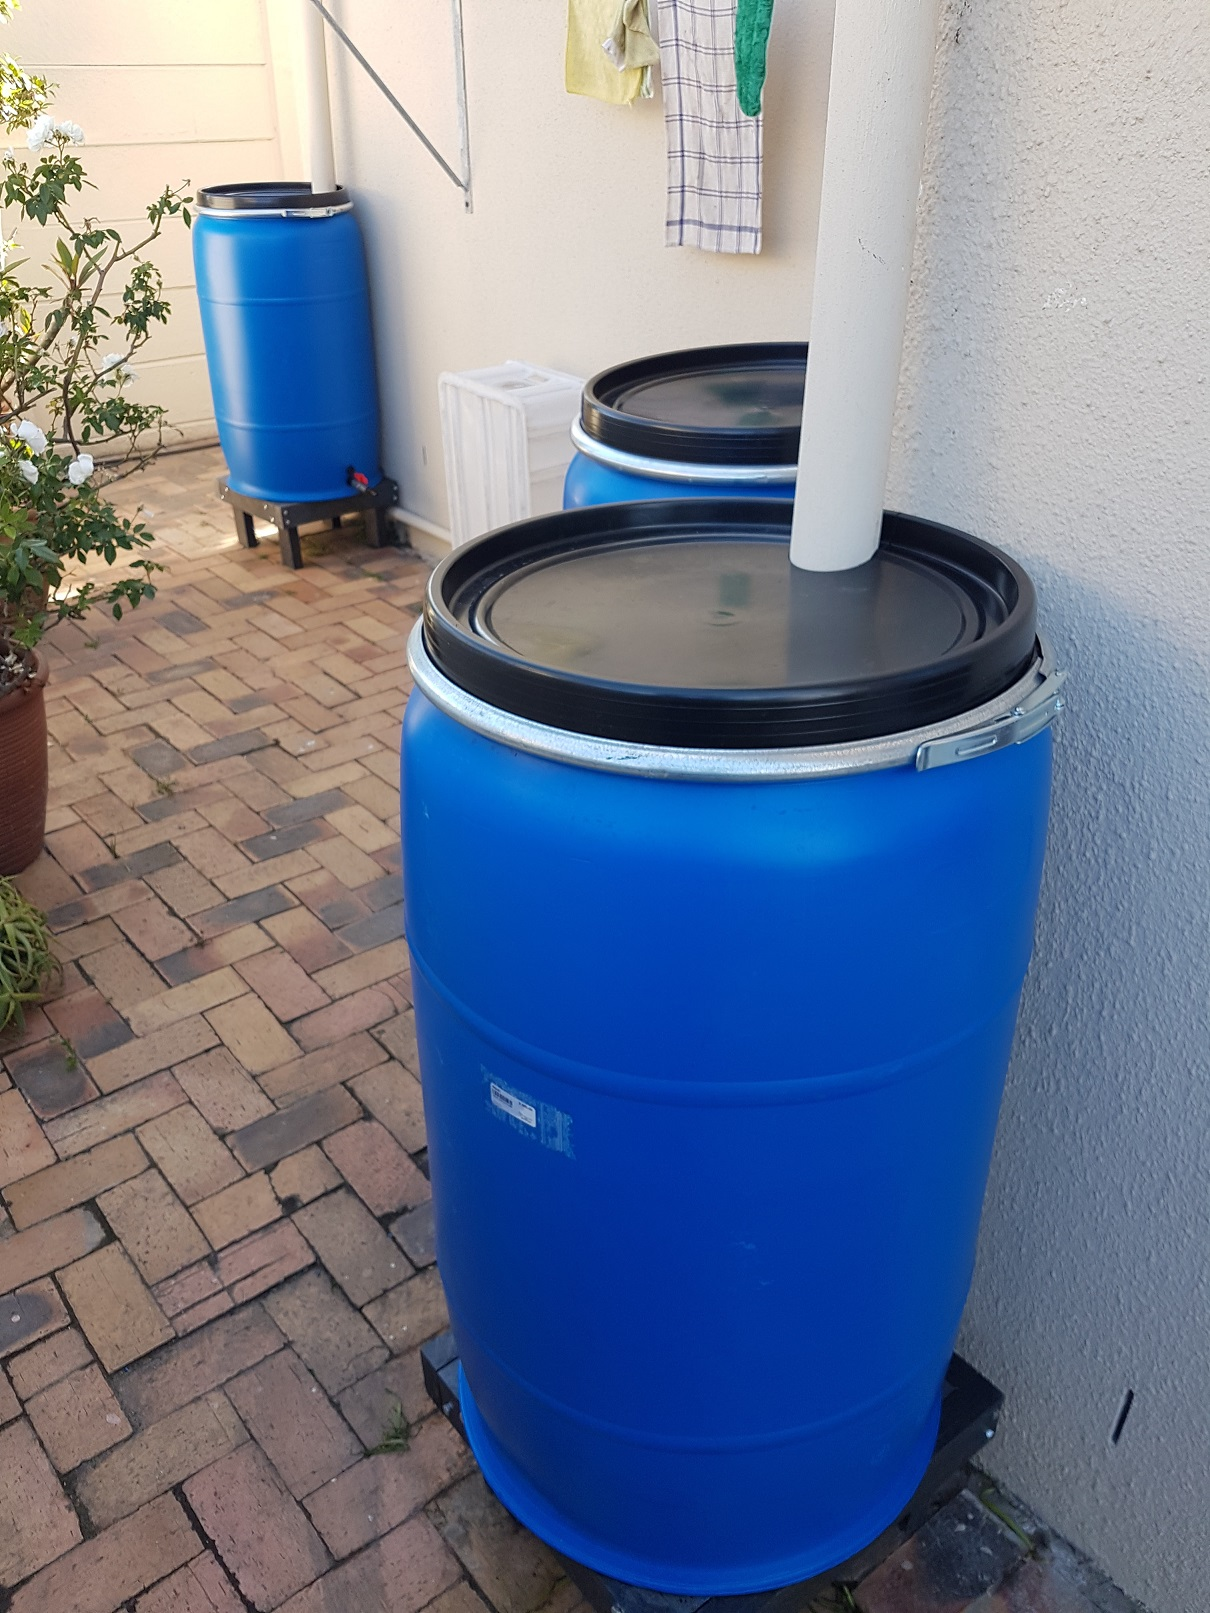 New drain water catching system designed for al houses and complexes - Big or small.